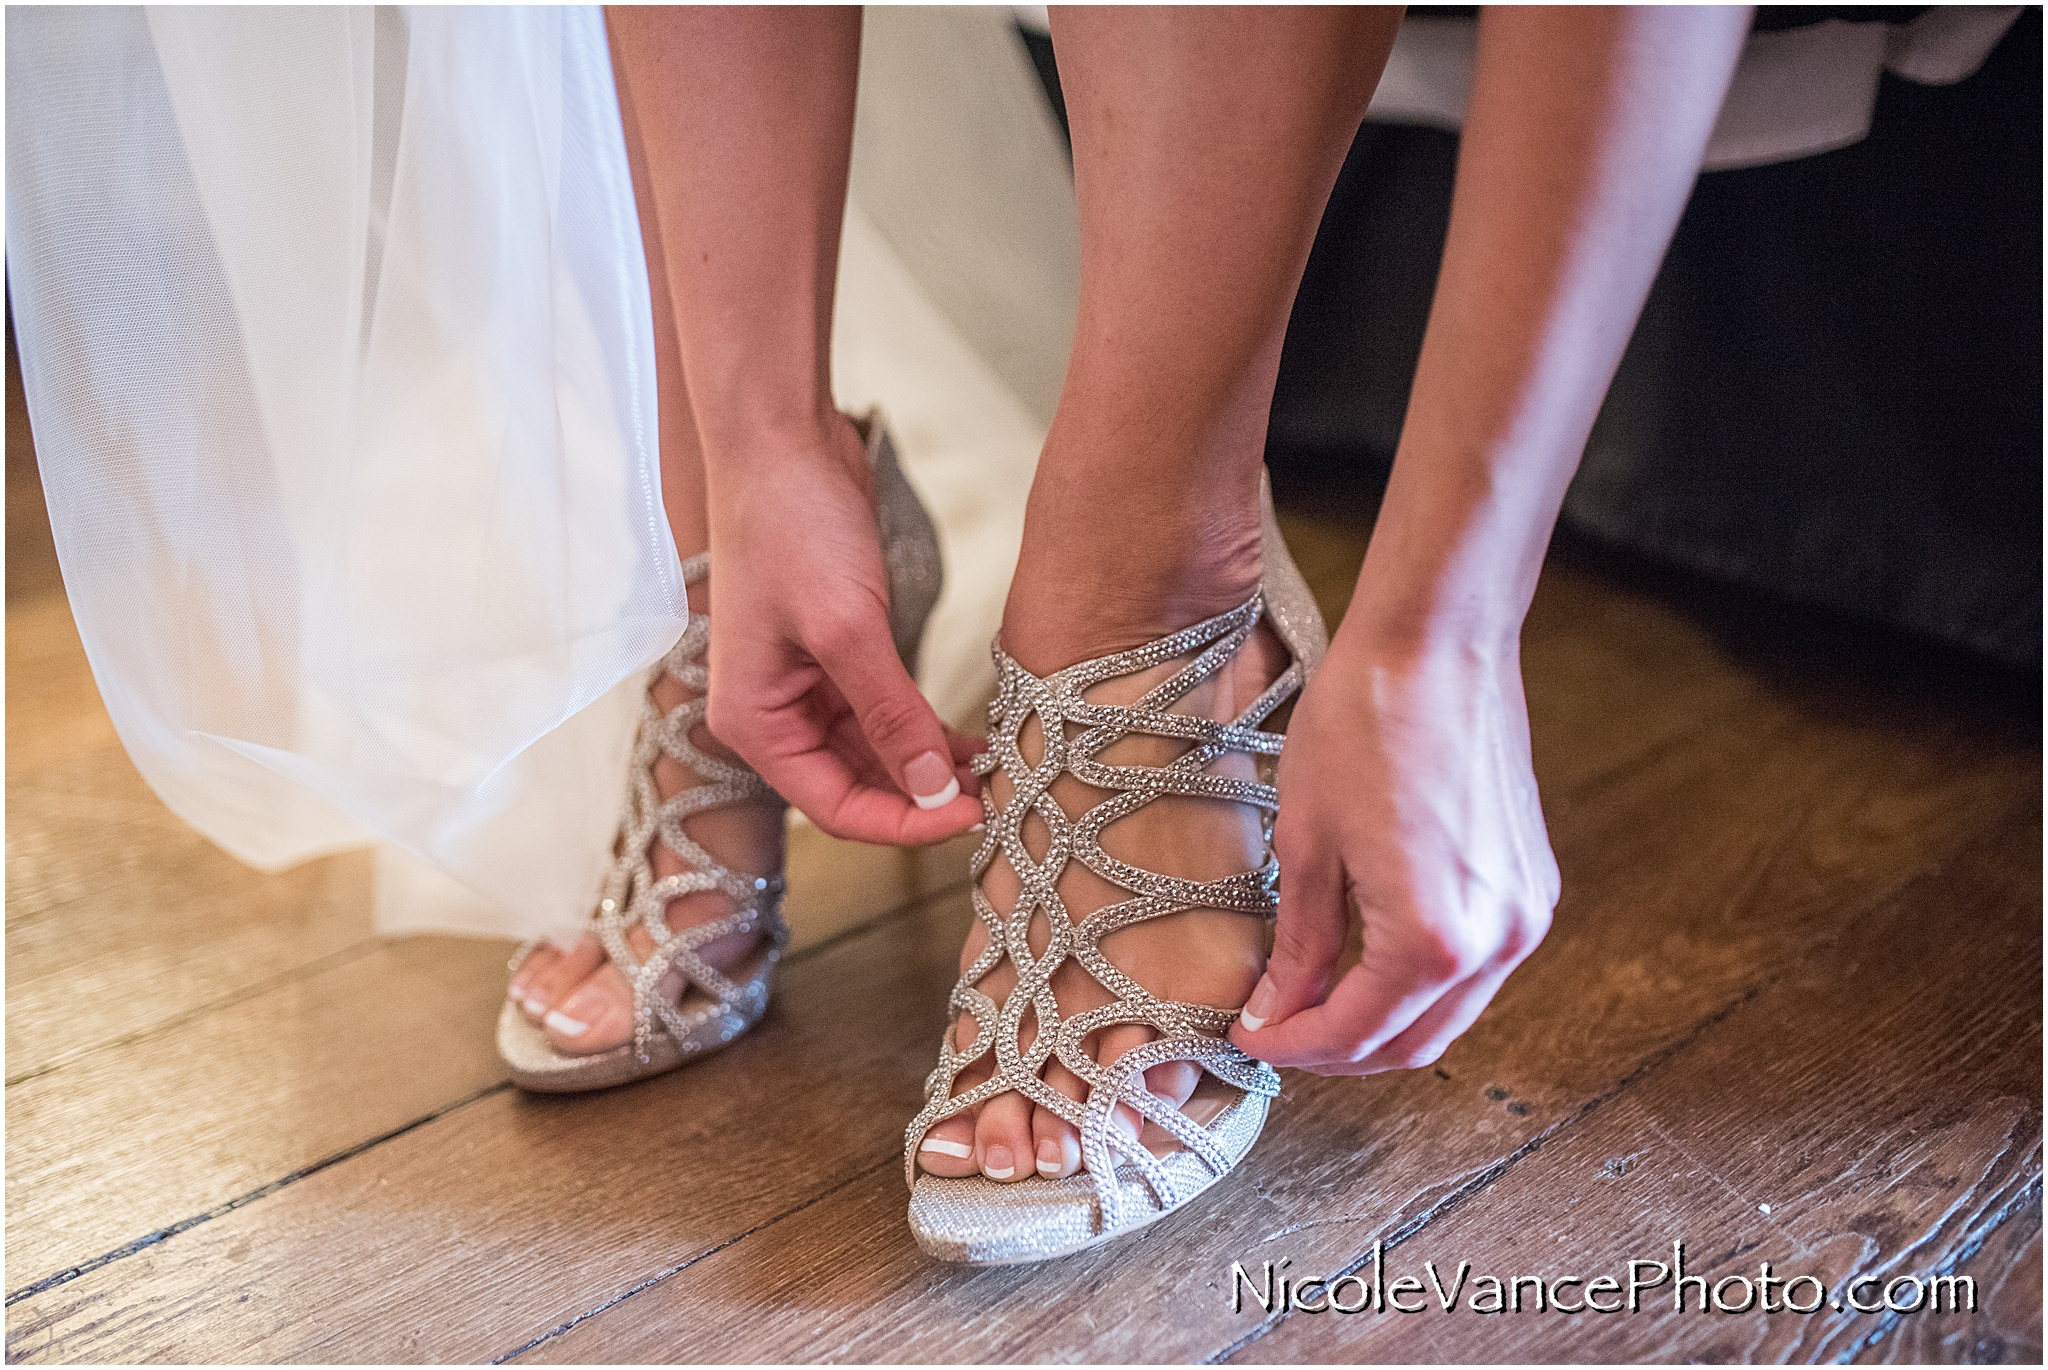 The bride put on her shoes.